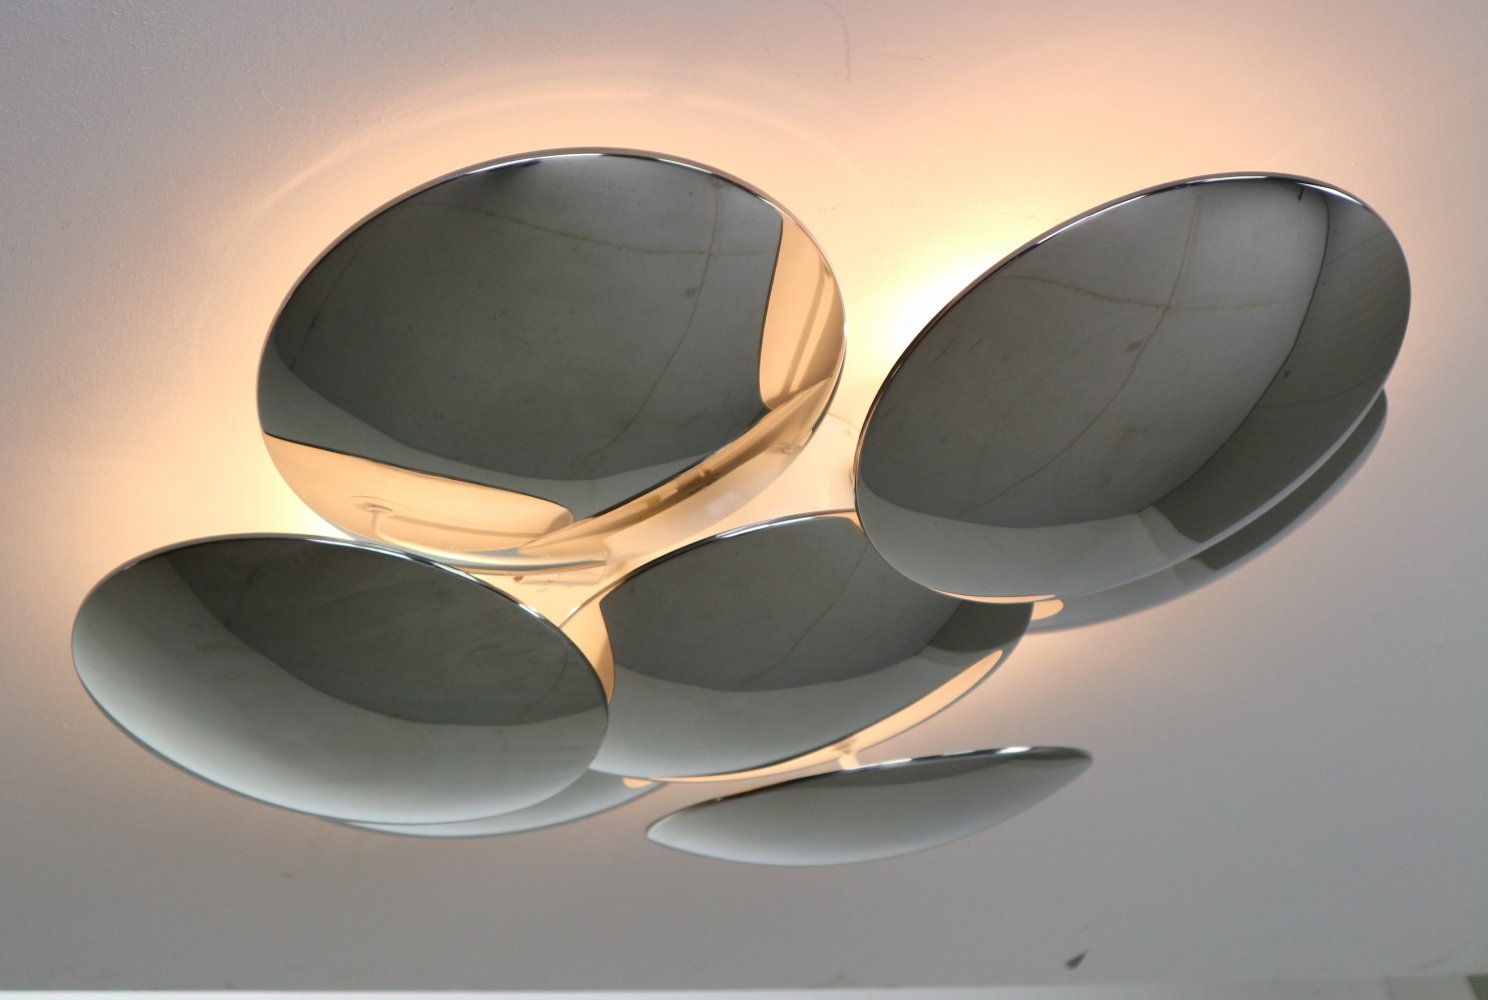 Mid-Century Modern Sculpture Ceiling or Wall Light by Reggiani, Italy 1970s